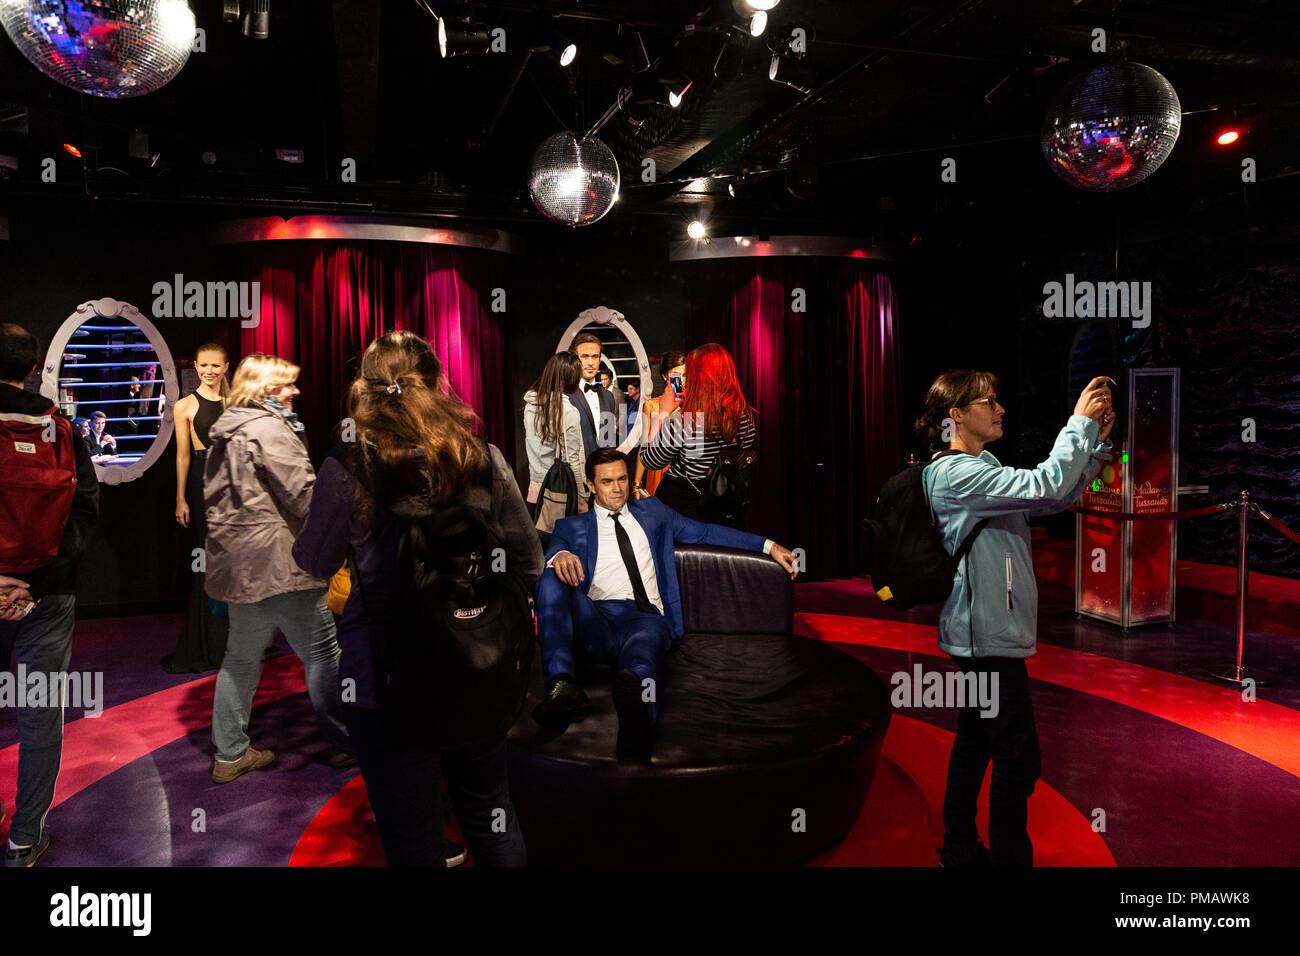 Interior of Madame Tussauds Wax museum in Amsterdam, Netherlands - Stock Image